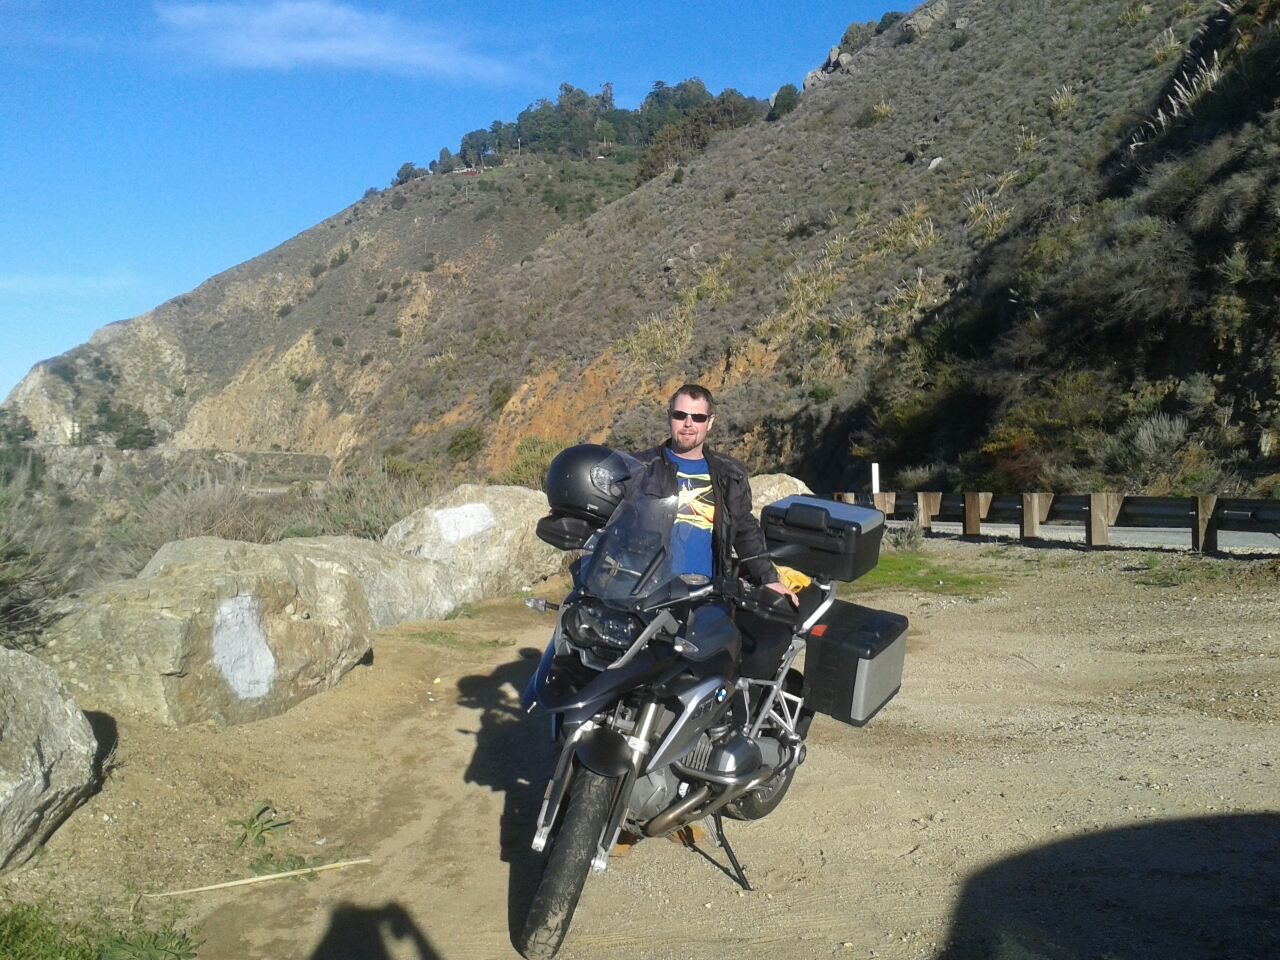 Smooth rental experience: R1200GS to Big Sur - California ...